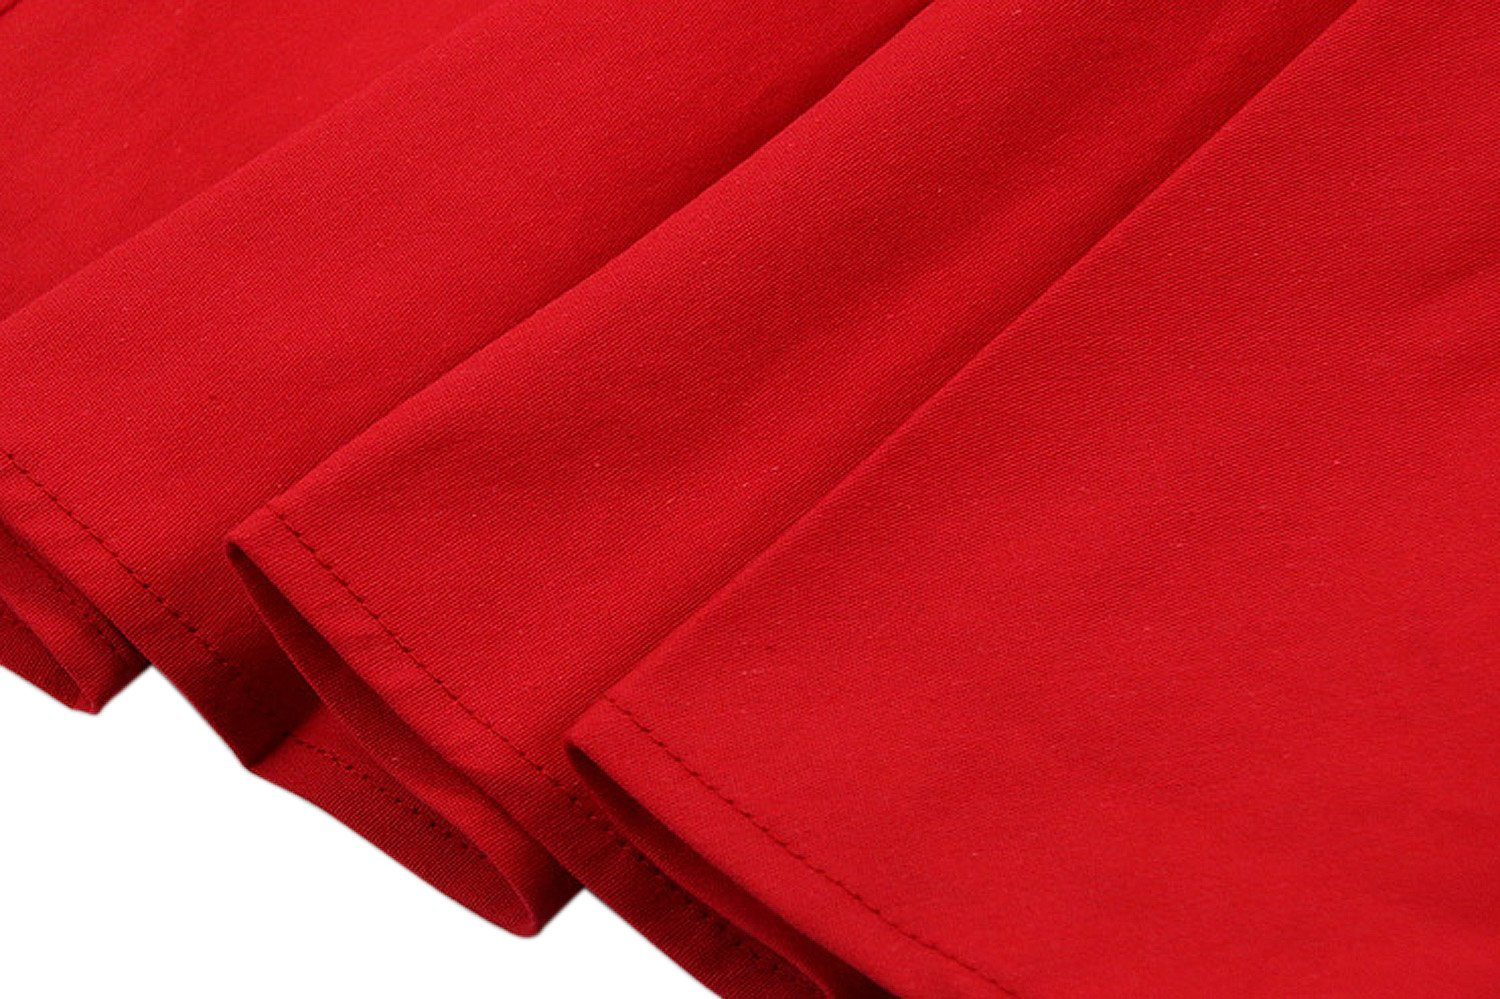 Killreal Women's High Waisted Flared Vintage Skirt for Christmas Party Red X-Large by Killreal (Image #3)